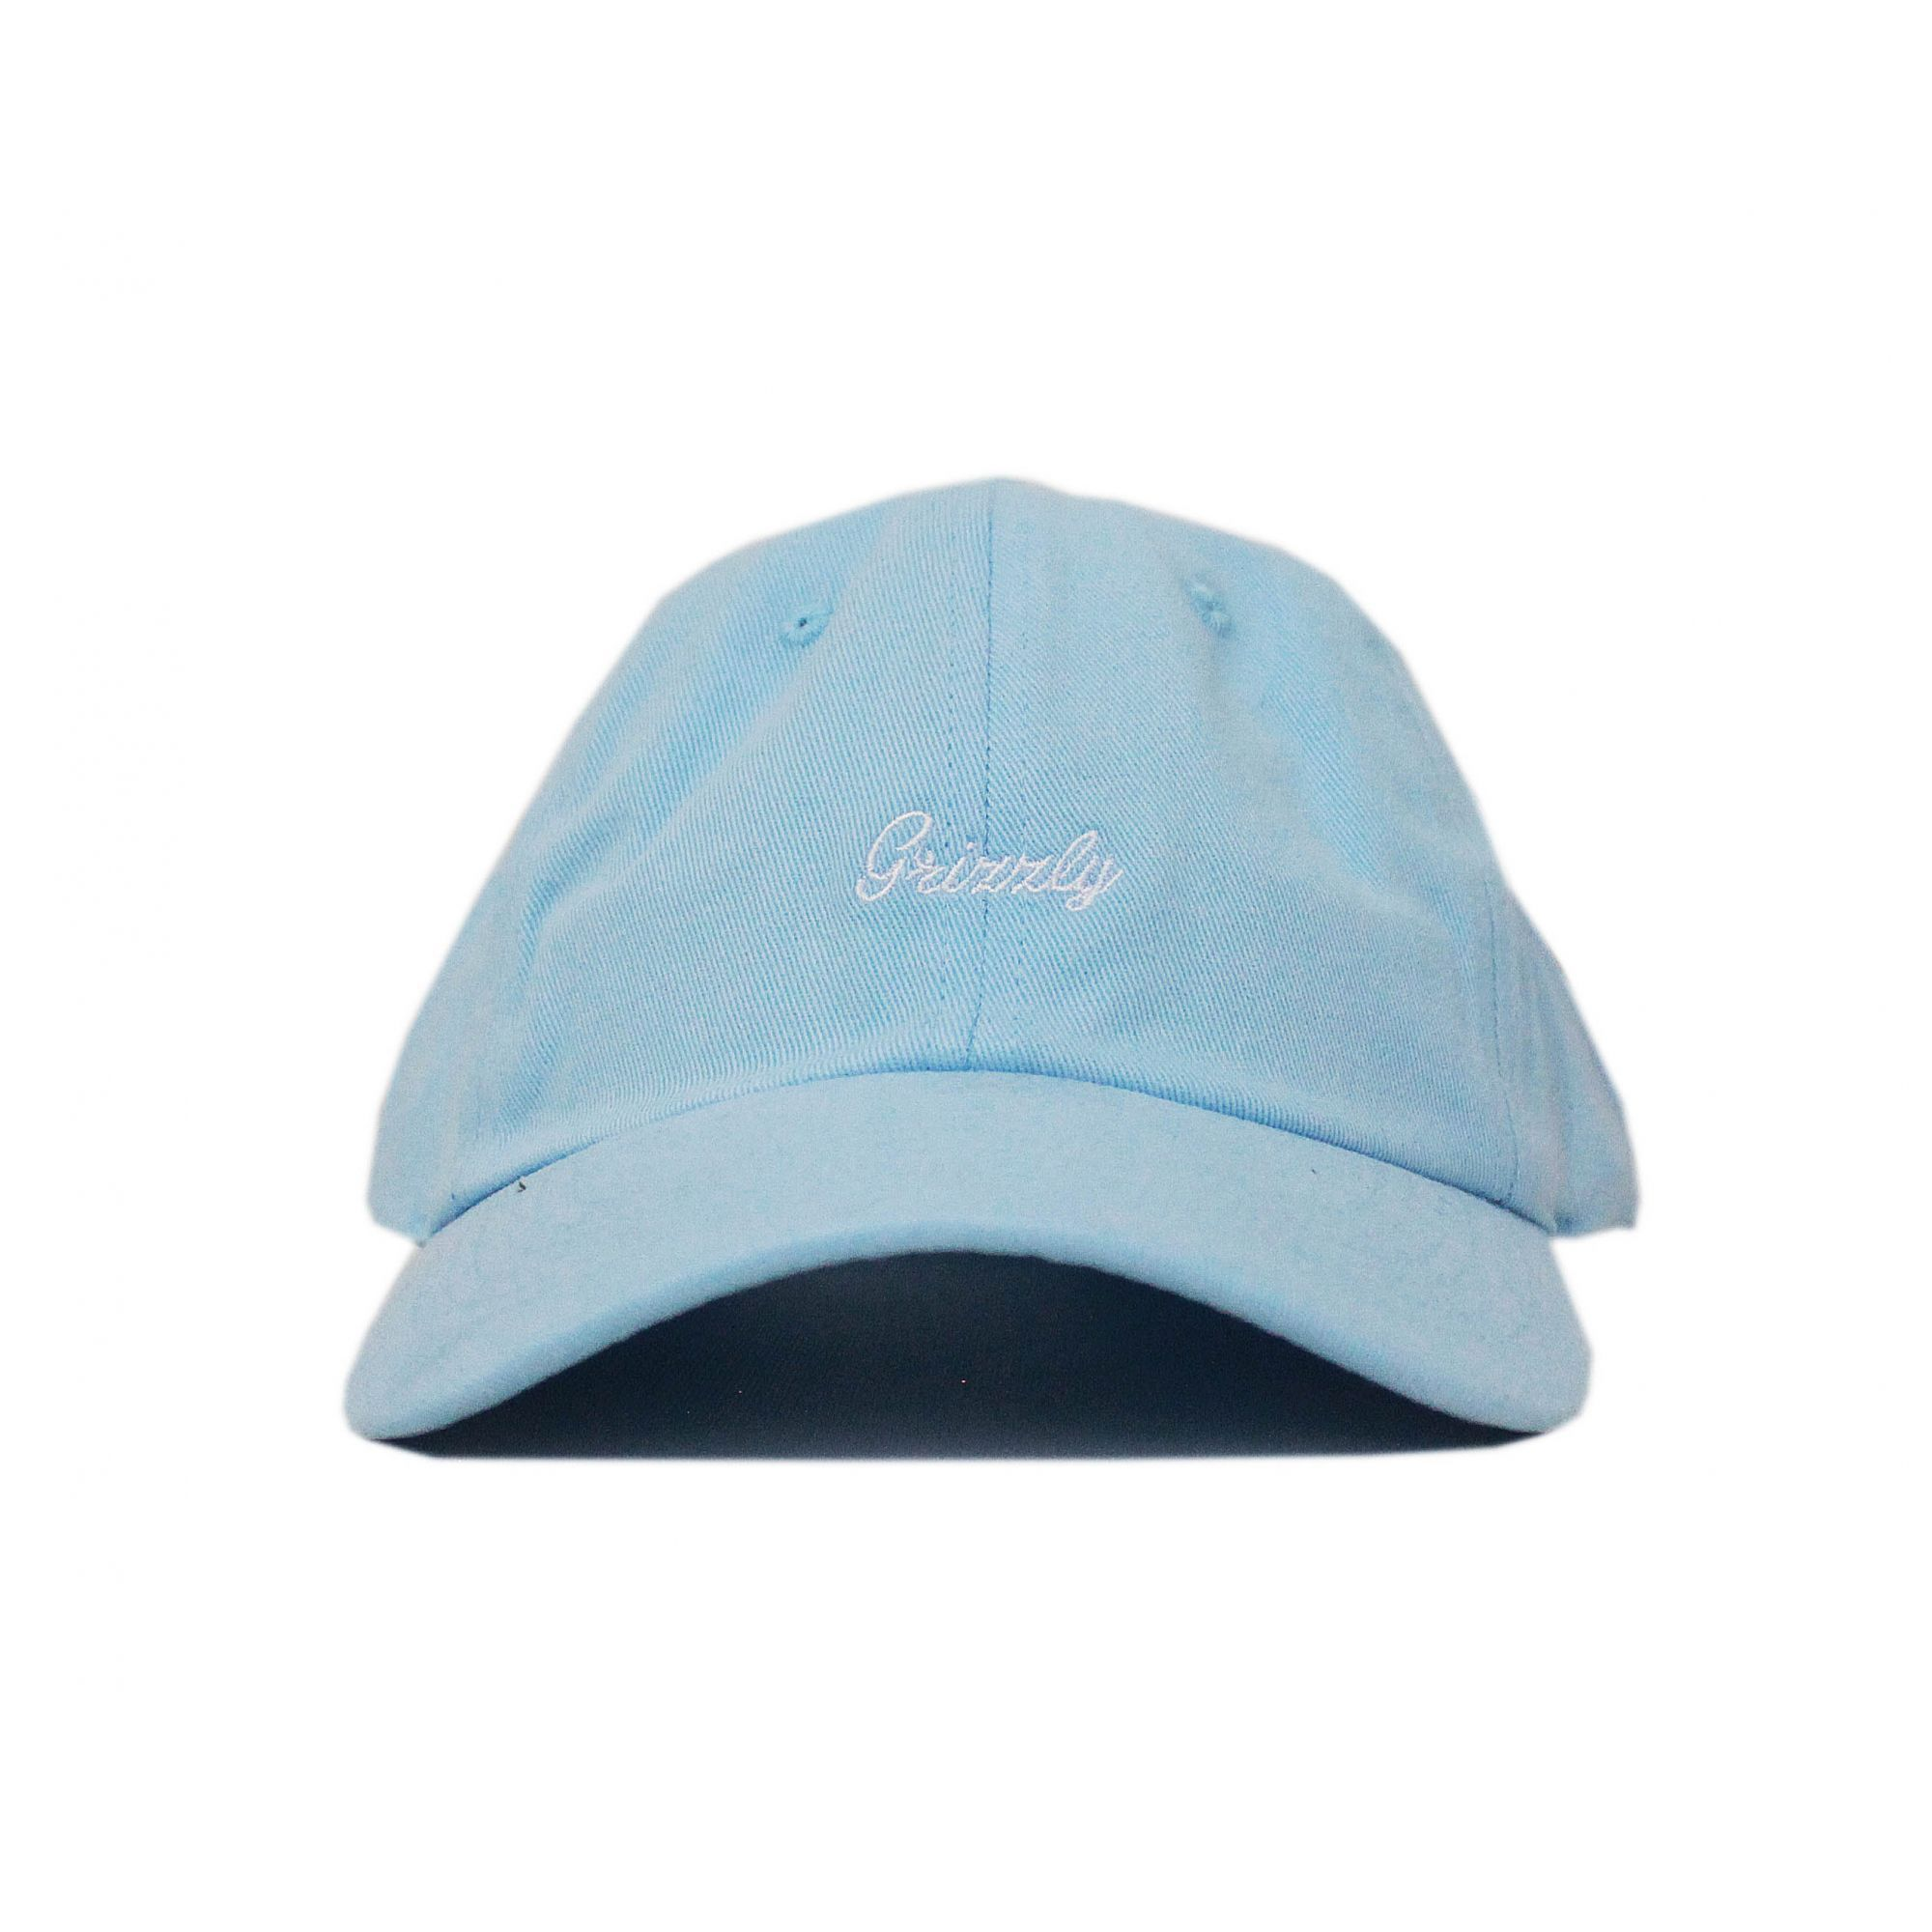 Boné Grizzly Dad Hat Late To The Game - Azul Bebê